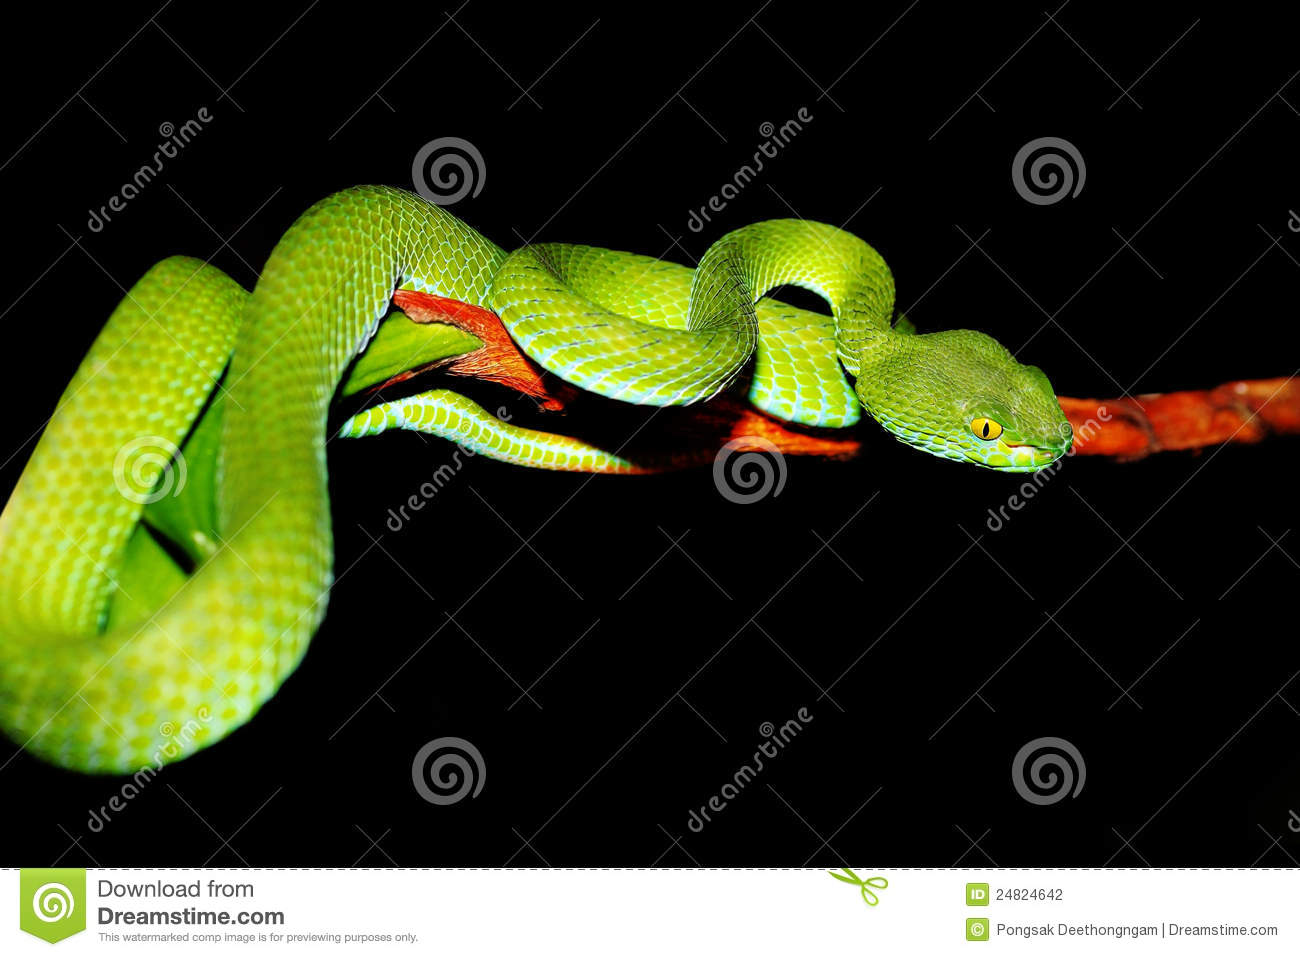 Green Pit Viper clipart #20, Download drawings